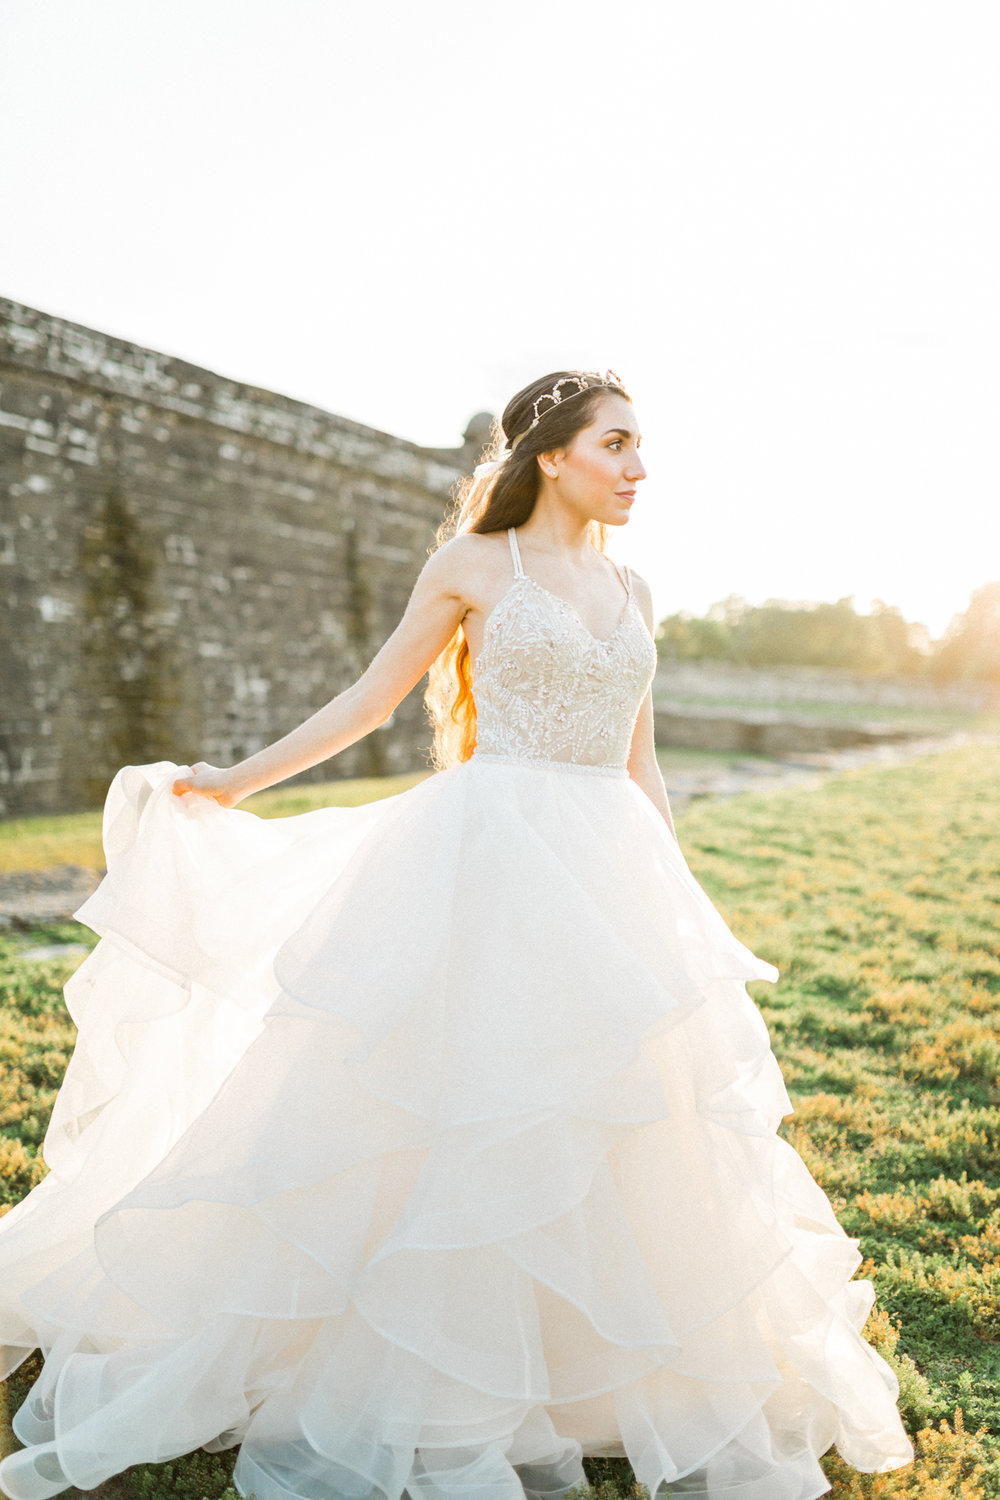 St. augustine, castillo de san marcos styled wedding bridal photo, bride in wedding dress, sunset